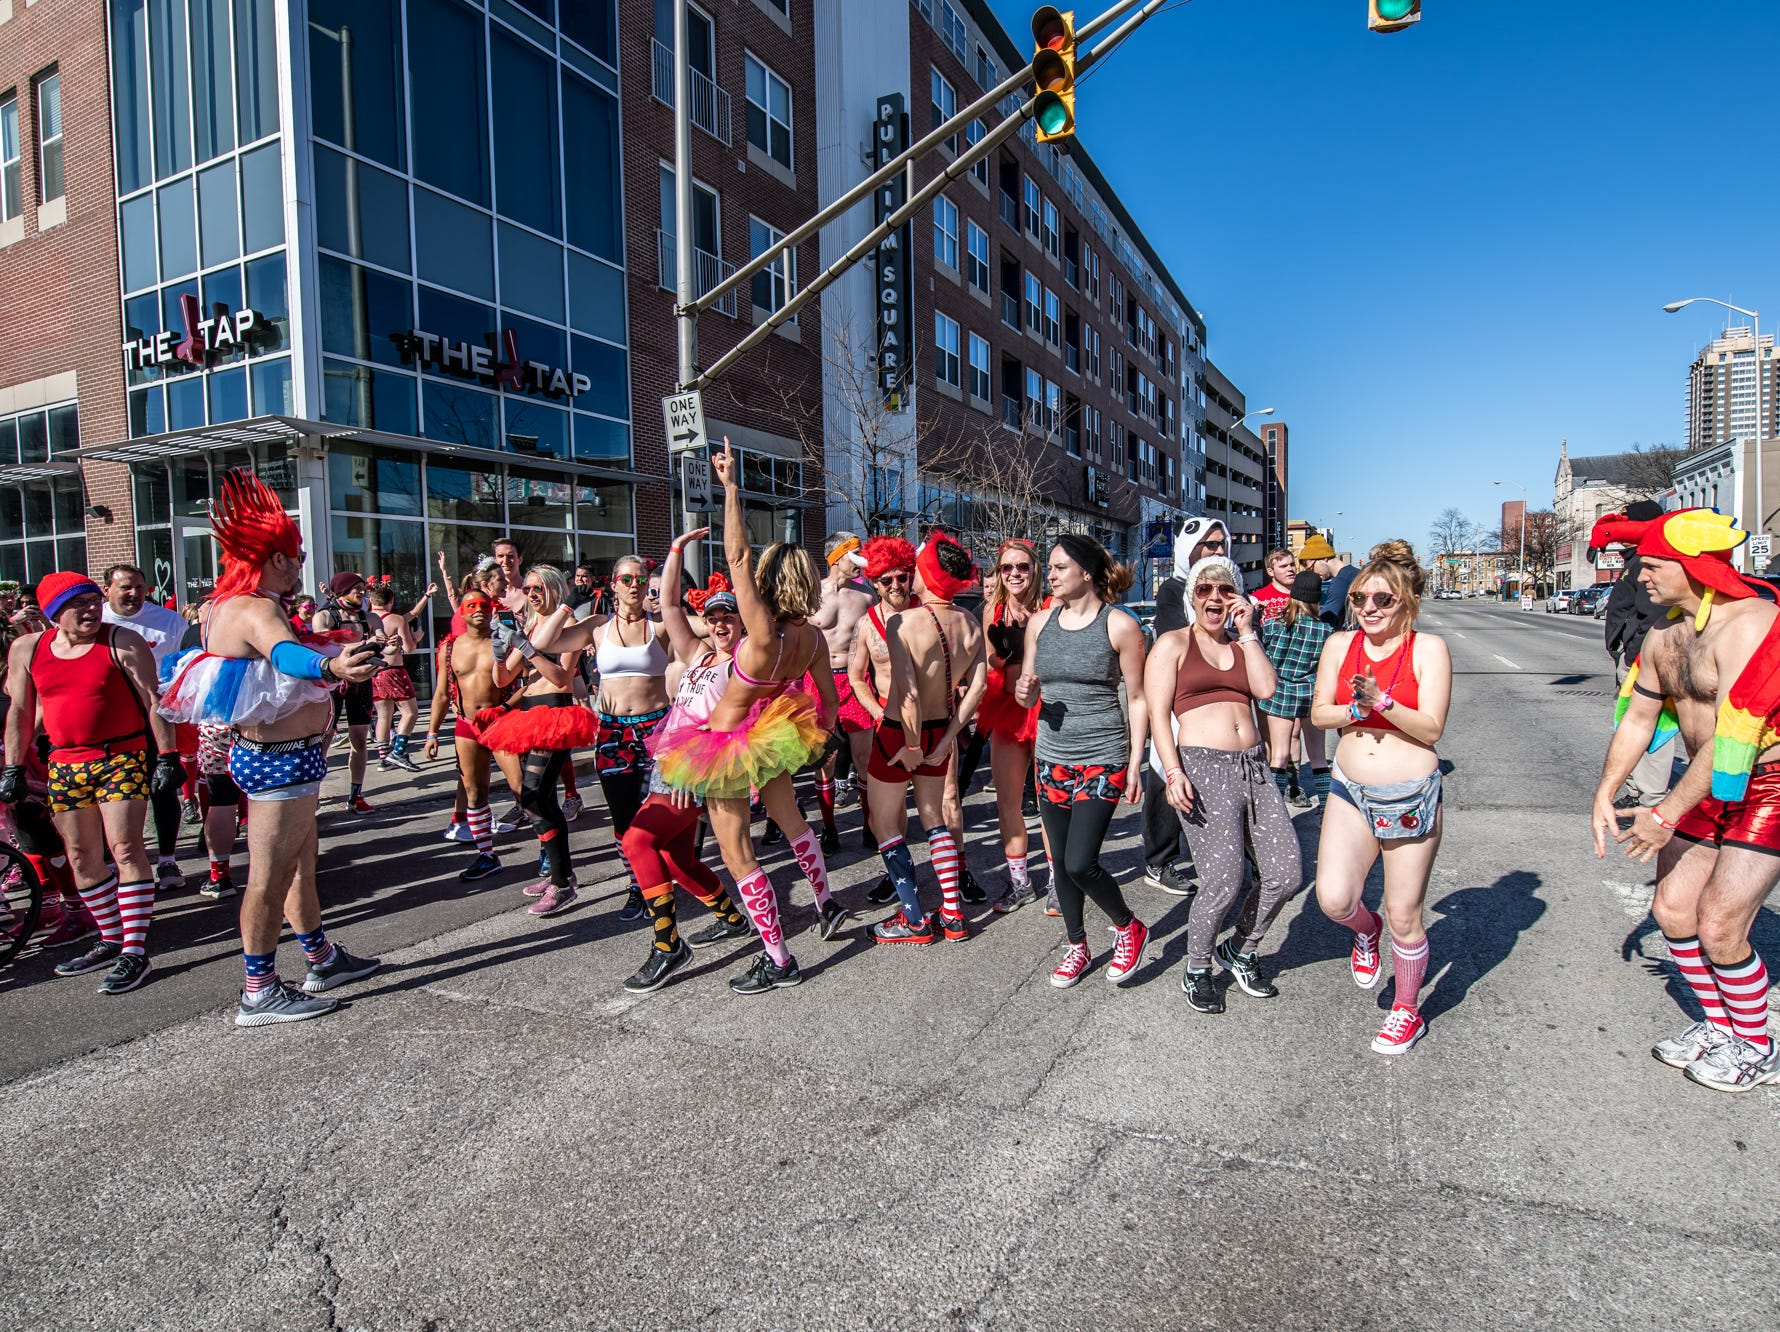 Cupid's Undie Run raised awareness and gathered donations for The Children's Tumor Foundation at The Tap in Indianapolis on Saturday, Feb. 9, 2019